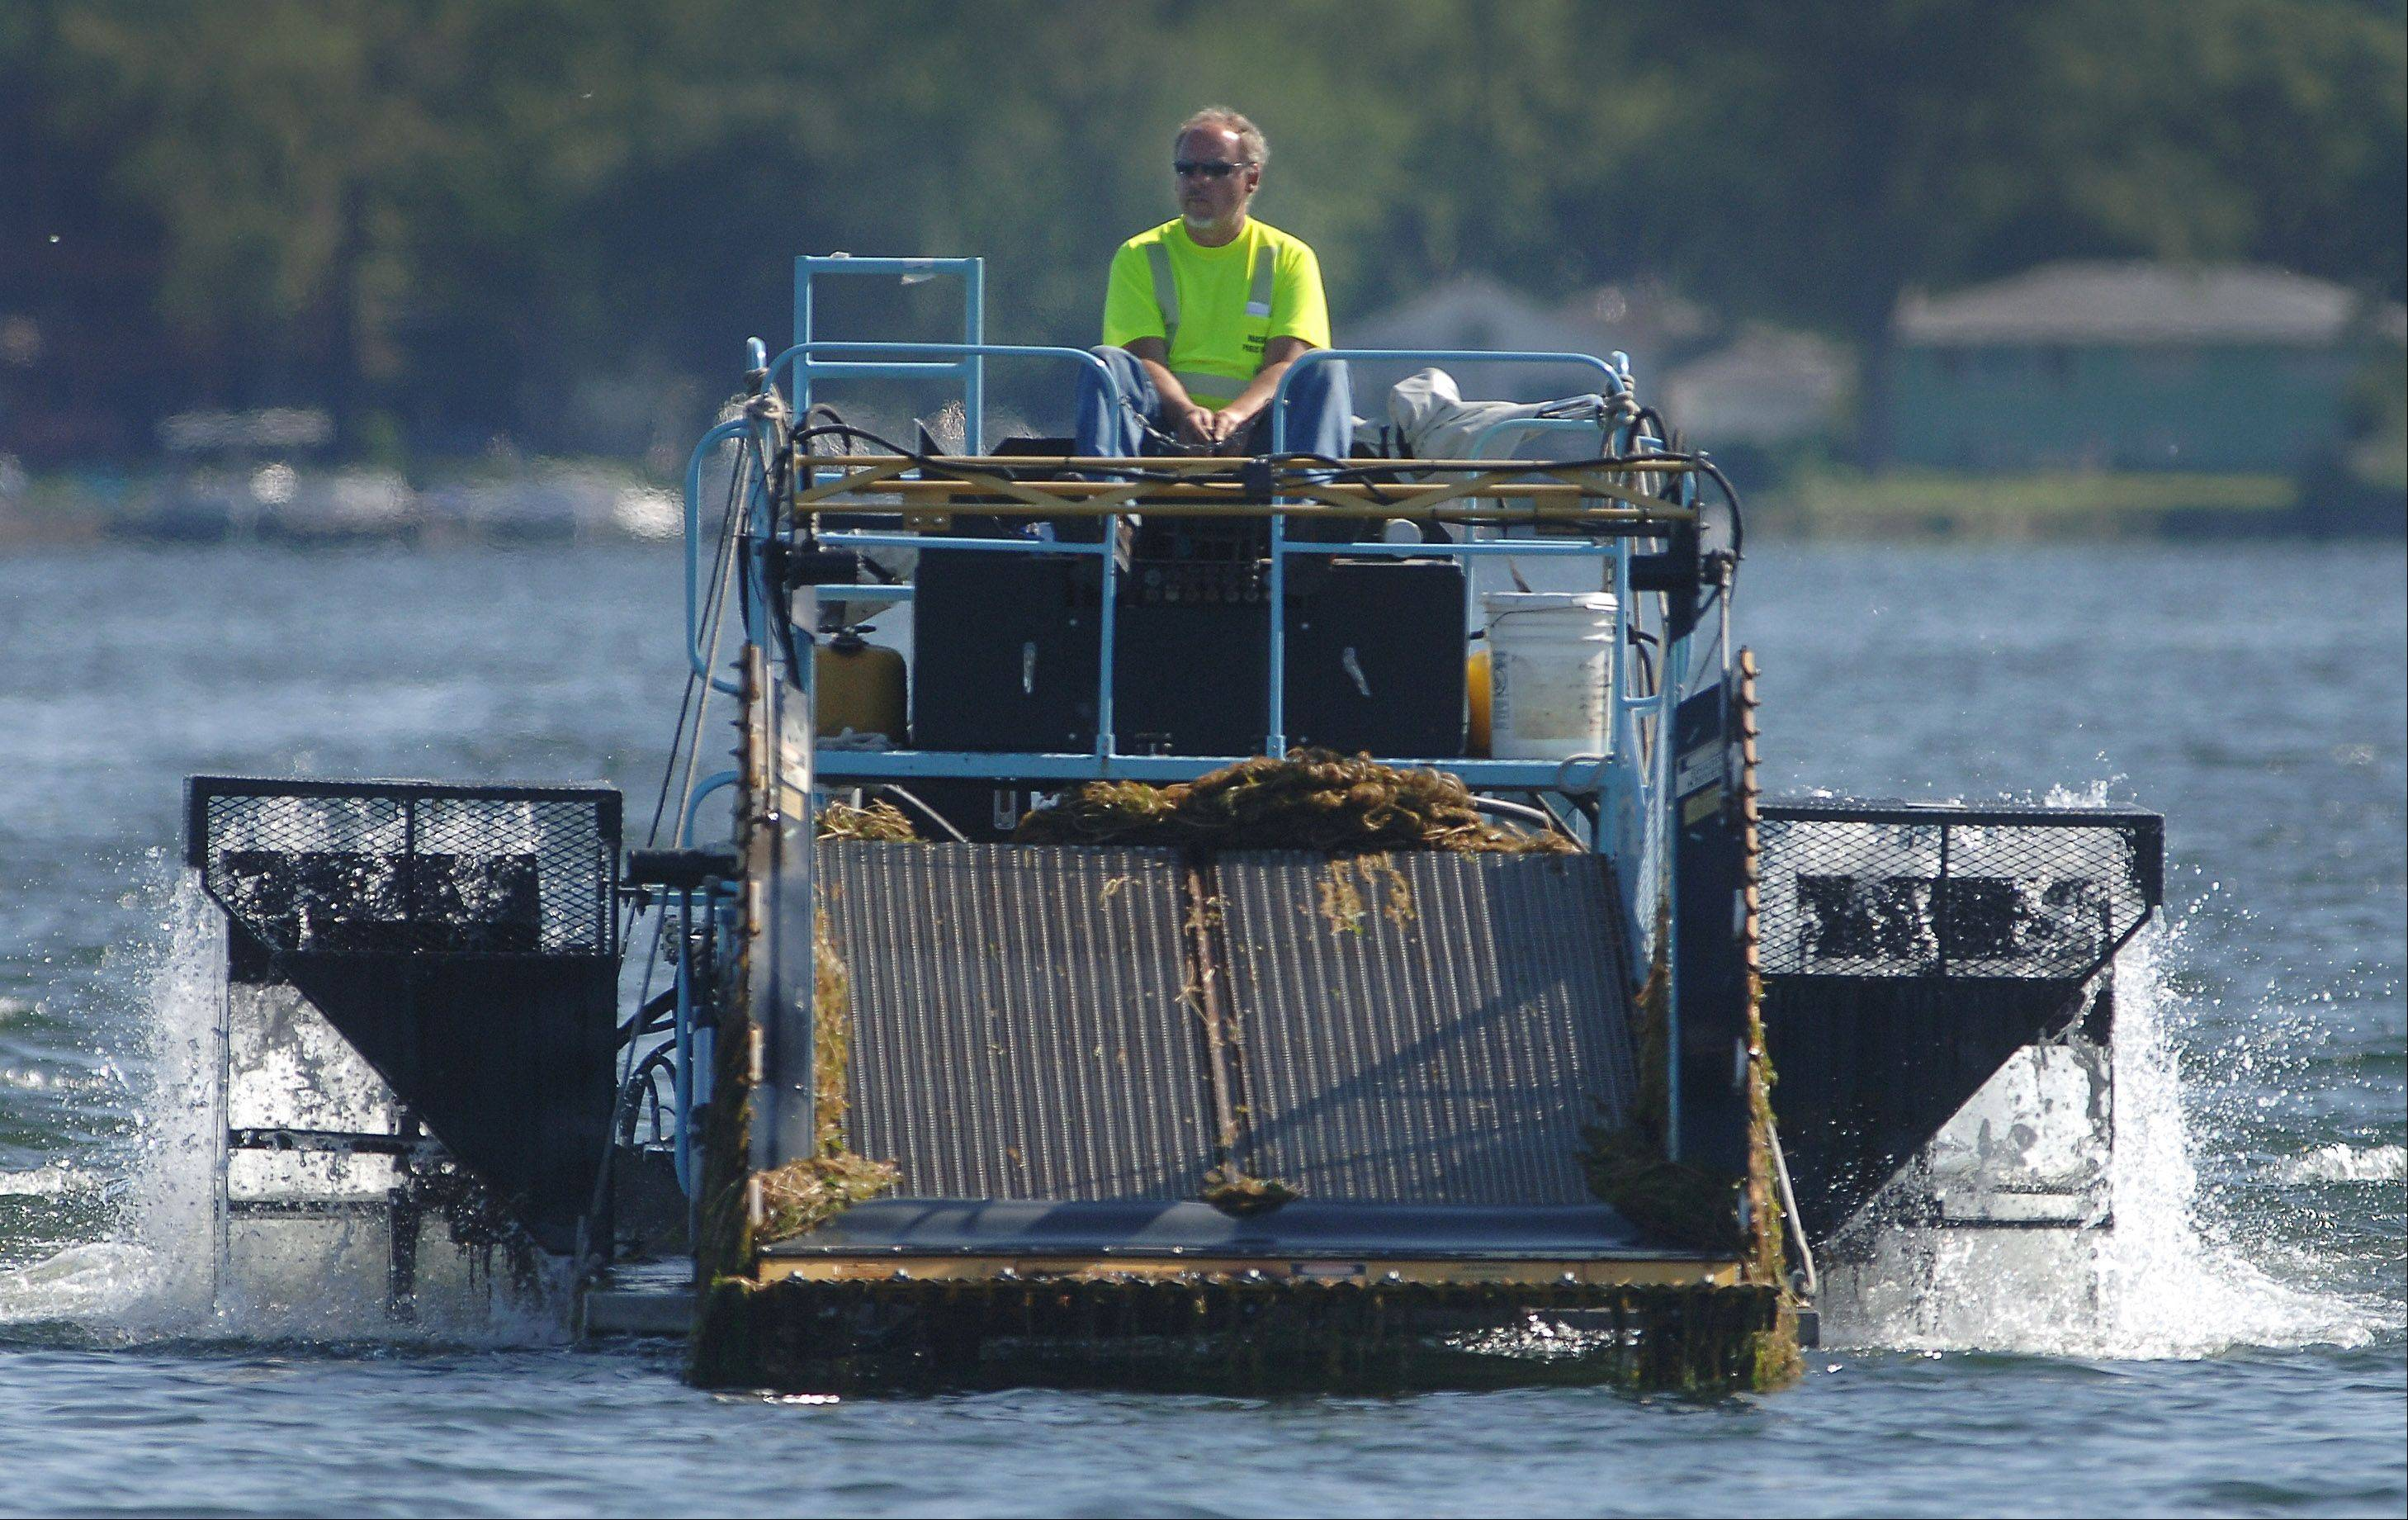 Invasive plants targeted in new boating law